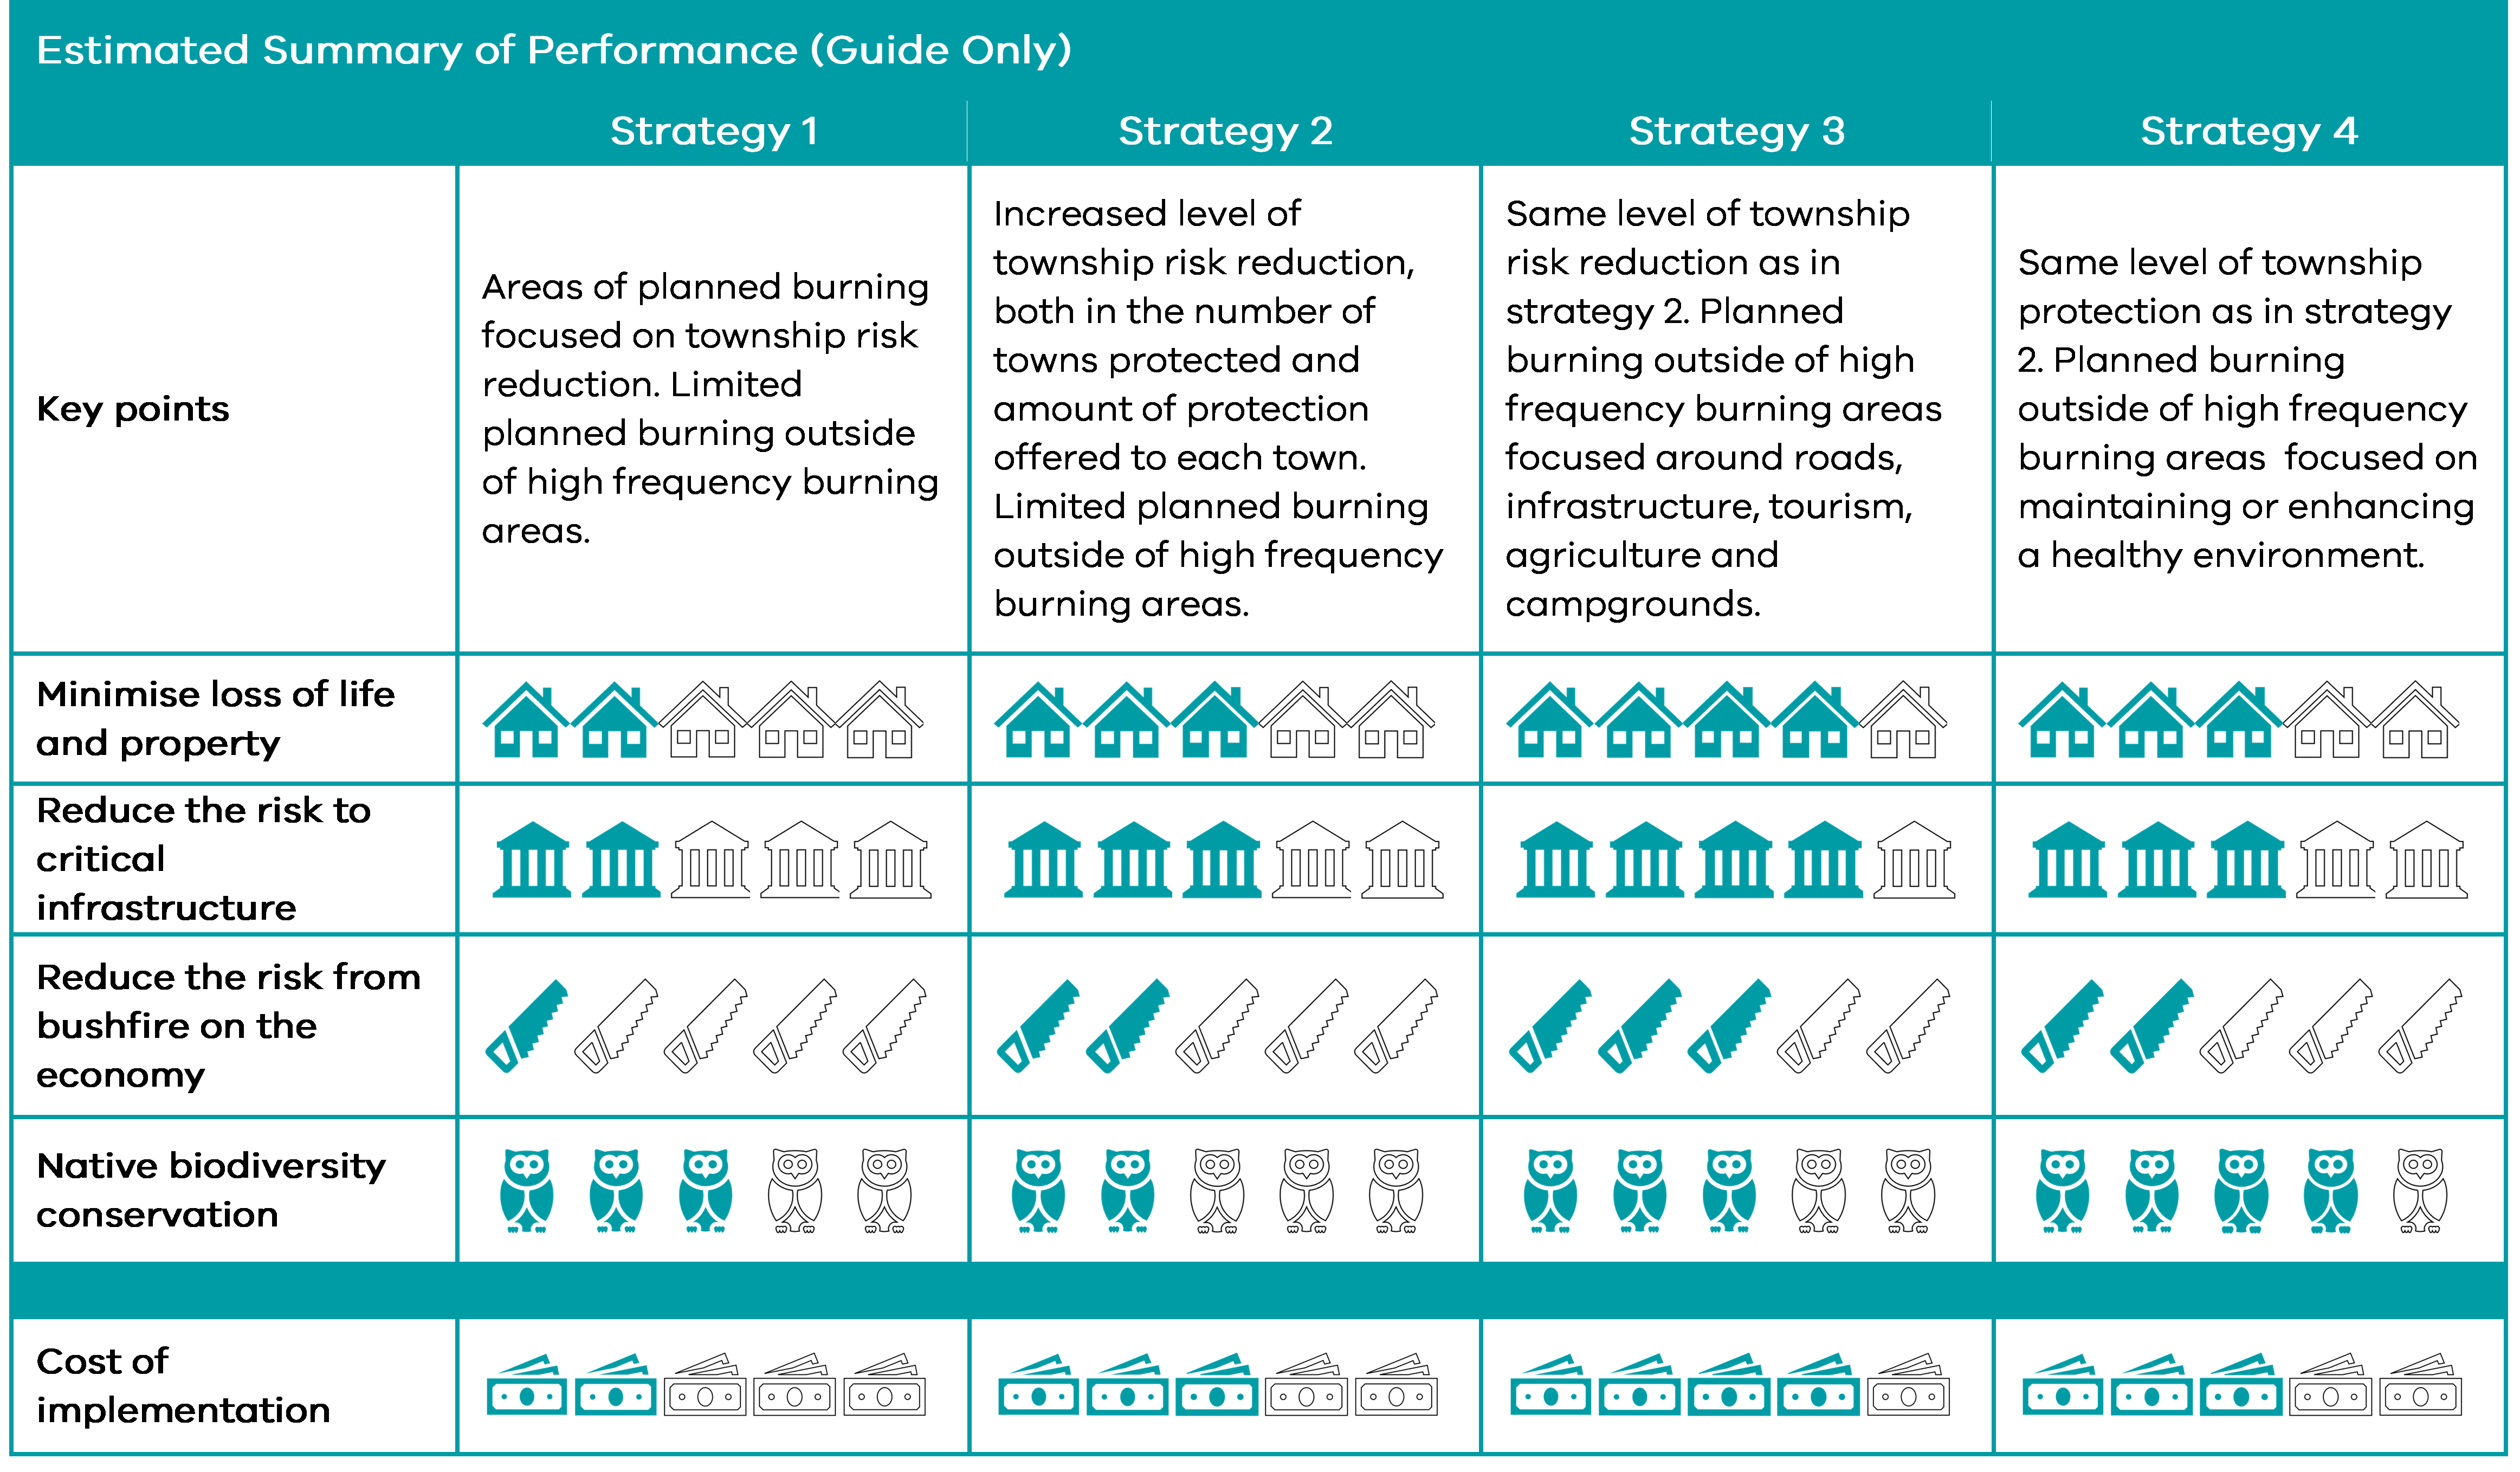 Description of table. Estimated Summary of Performance Table (this is a guide only) Strategy one Key points about this strategy: Areas of planned burning focused on township risk reduction. Limited planned burning outside of high frequency burning areas.